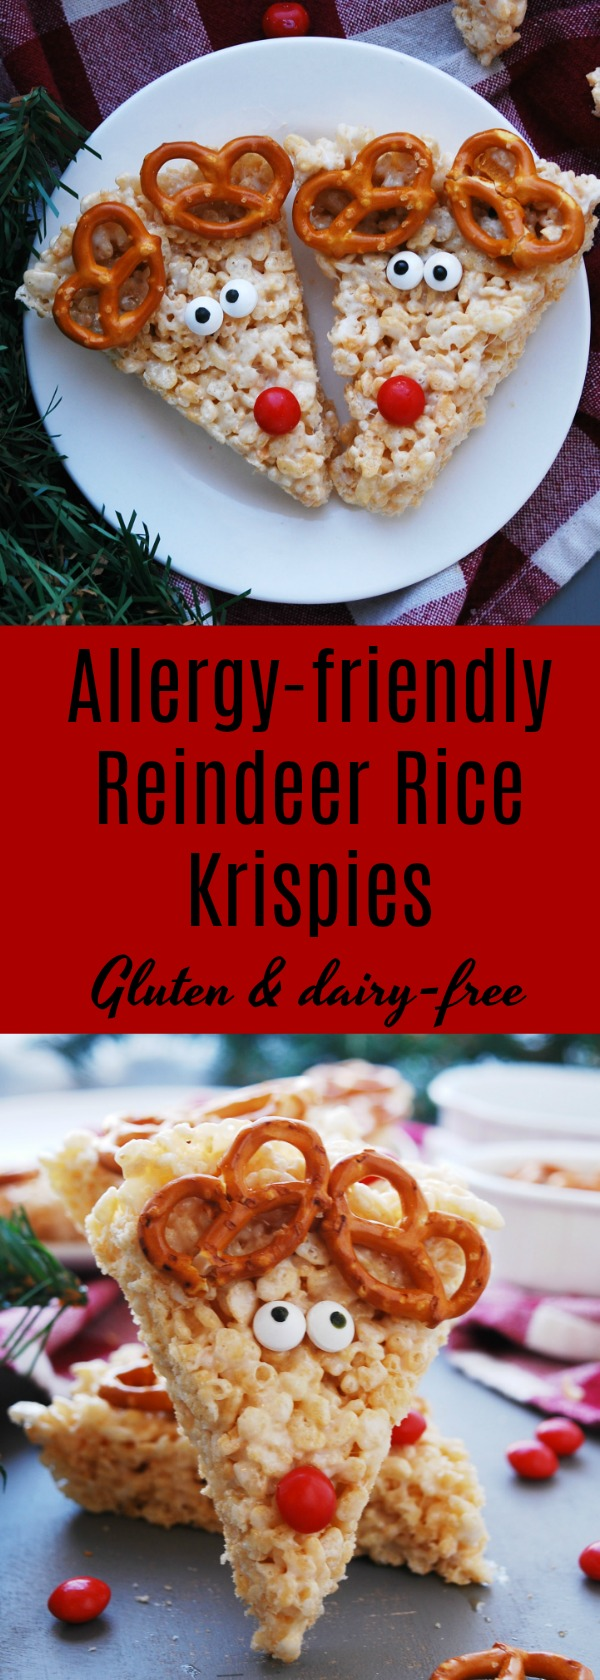 allergy-friendly reindeer rice krispies recipe